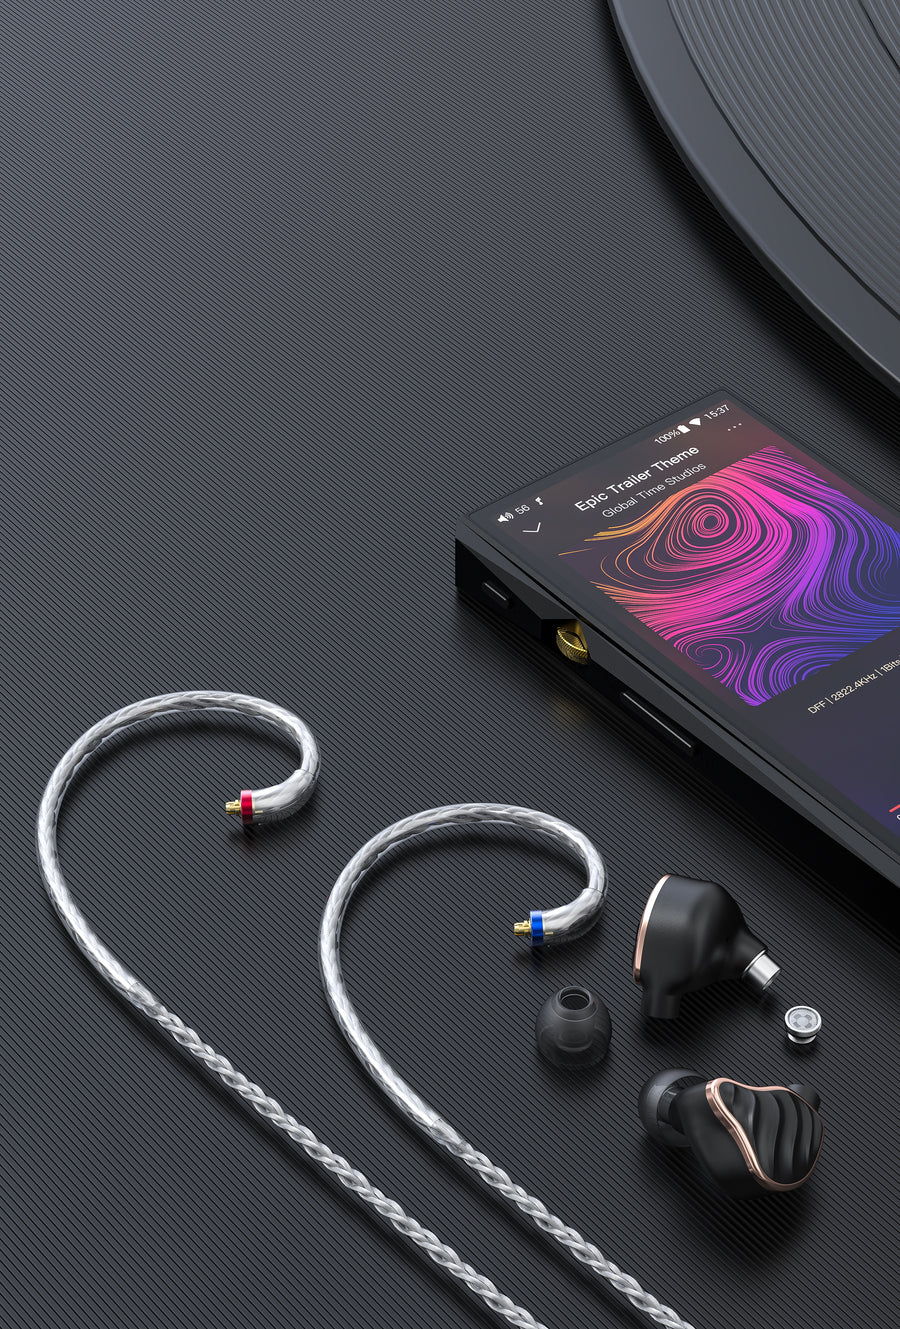 FiiO FH7 5-Drive (1DD + 4BAs) Hybrid in-Ear Earphones